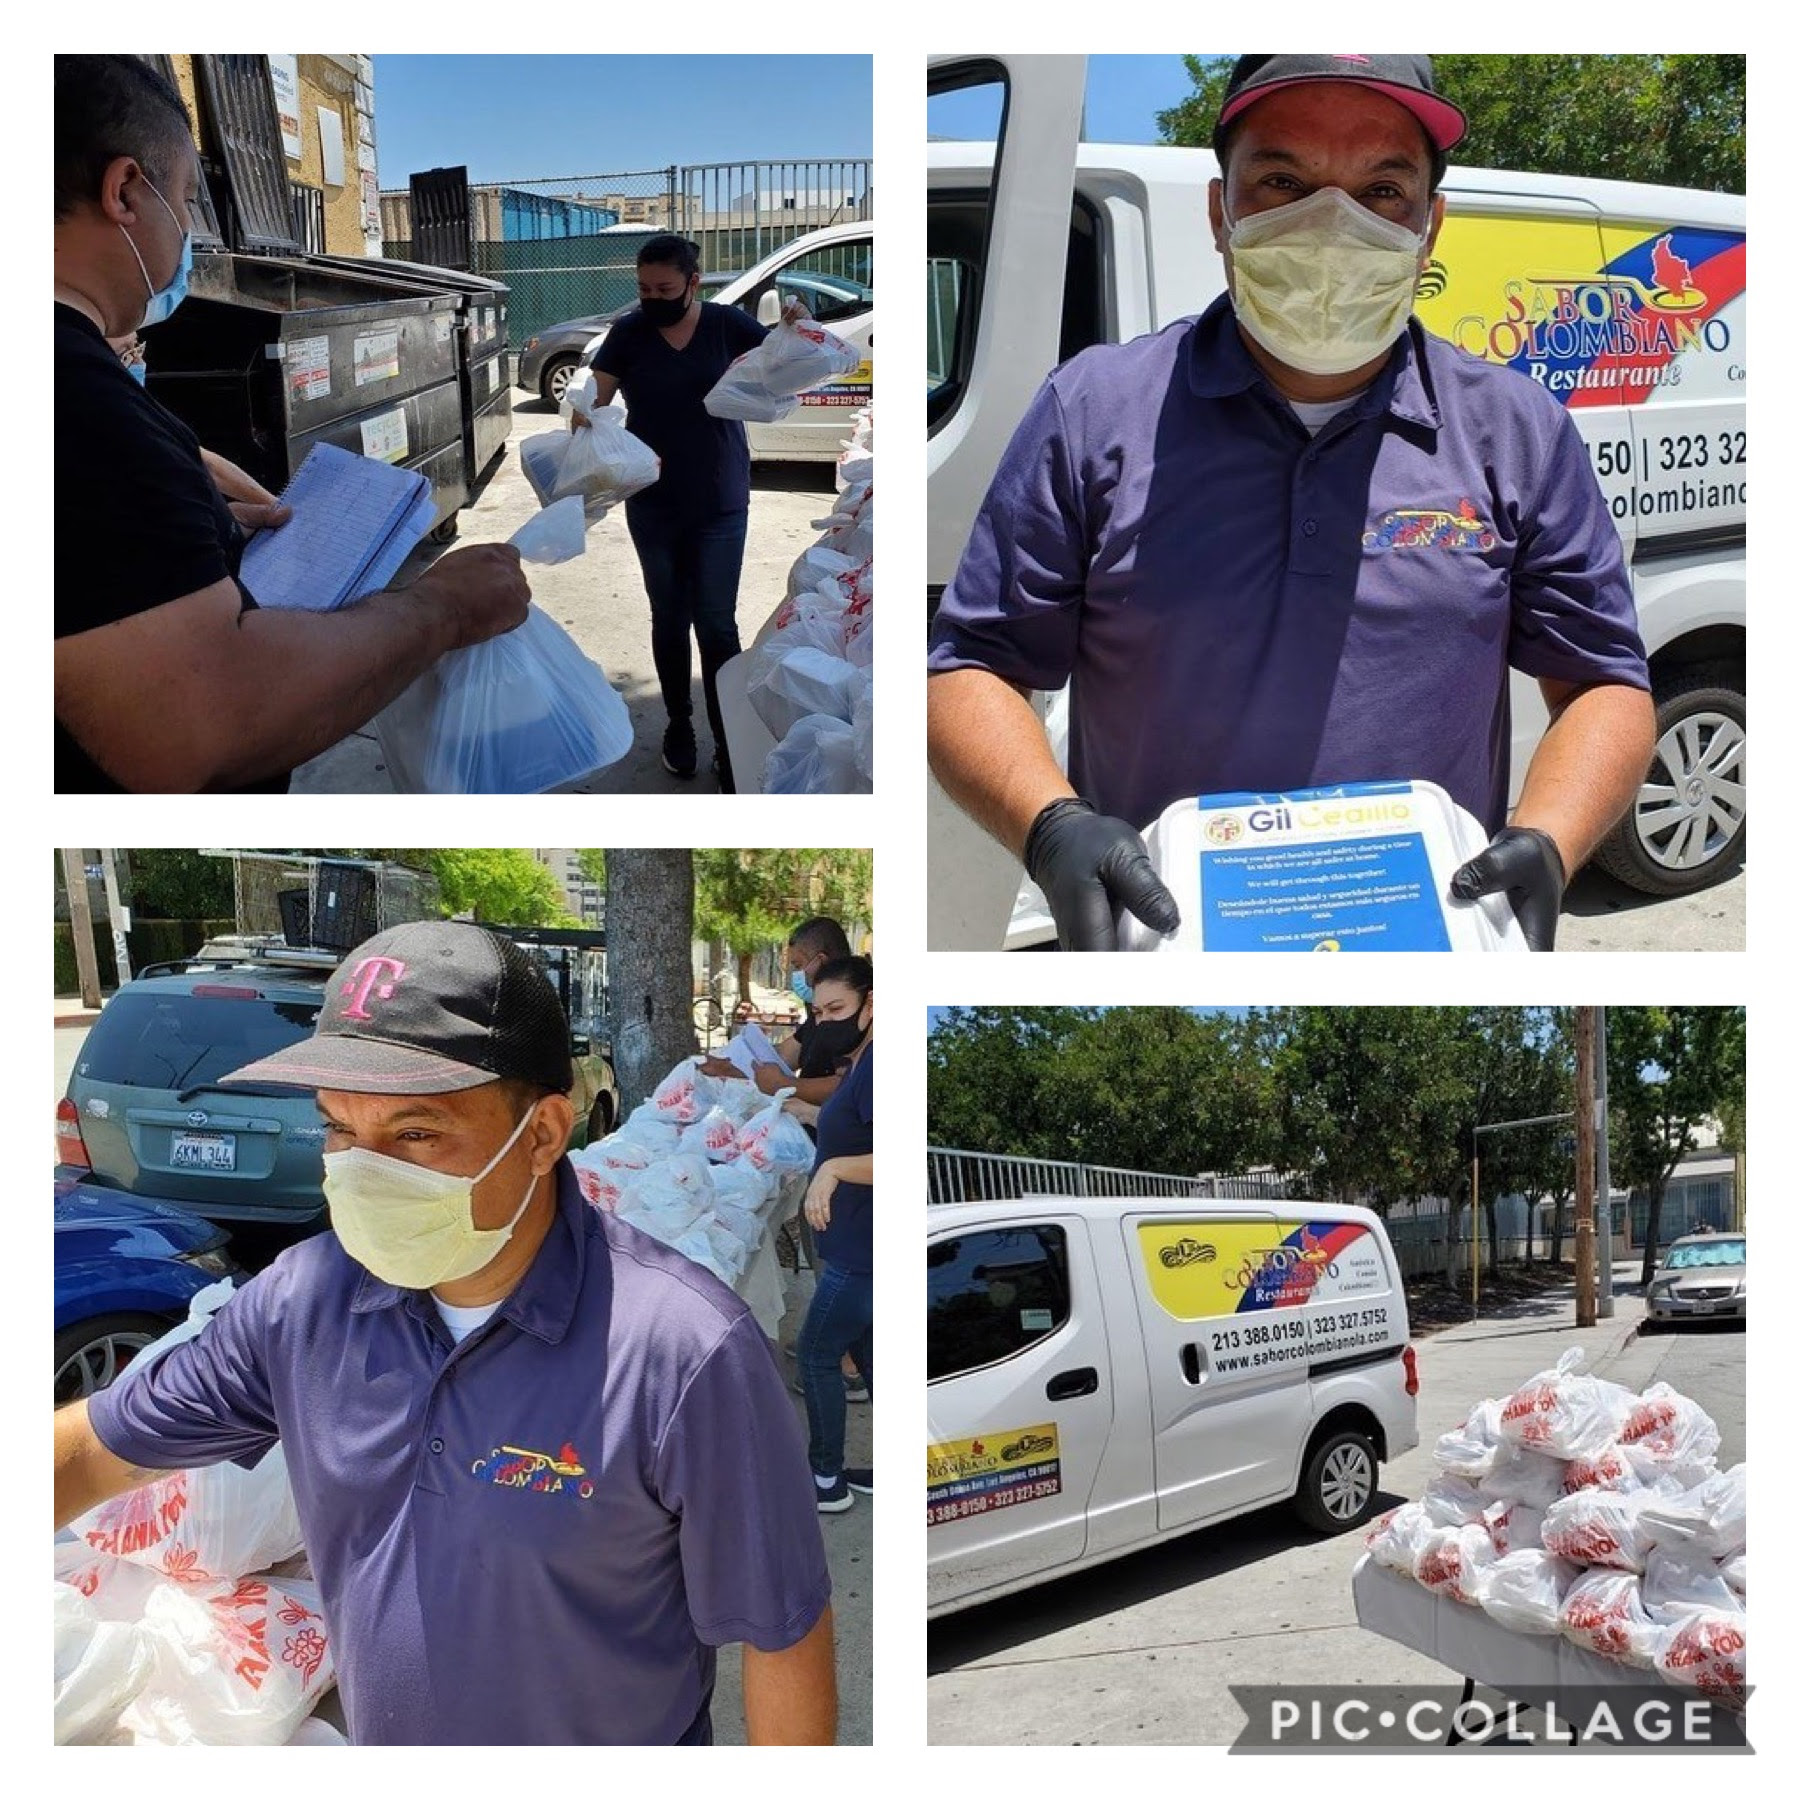 CCNP and Sabor Colmbiano Restaurant, distributed hot meals to families at Hartford Hill Apartments in Westlake 5-23-2020 COLLAGE